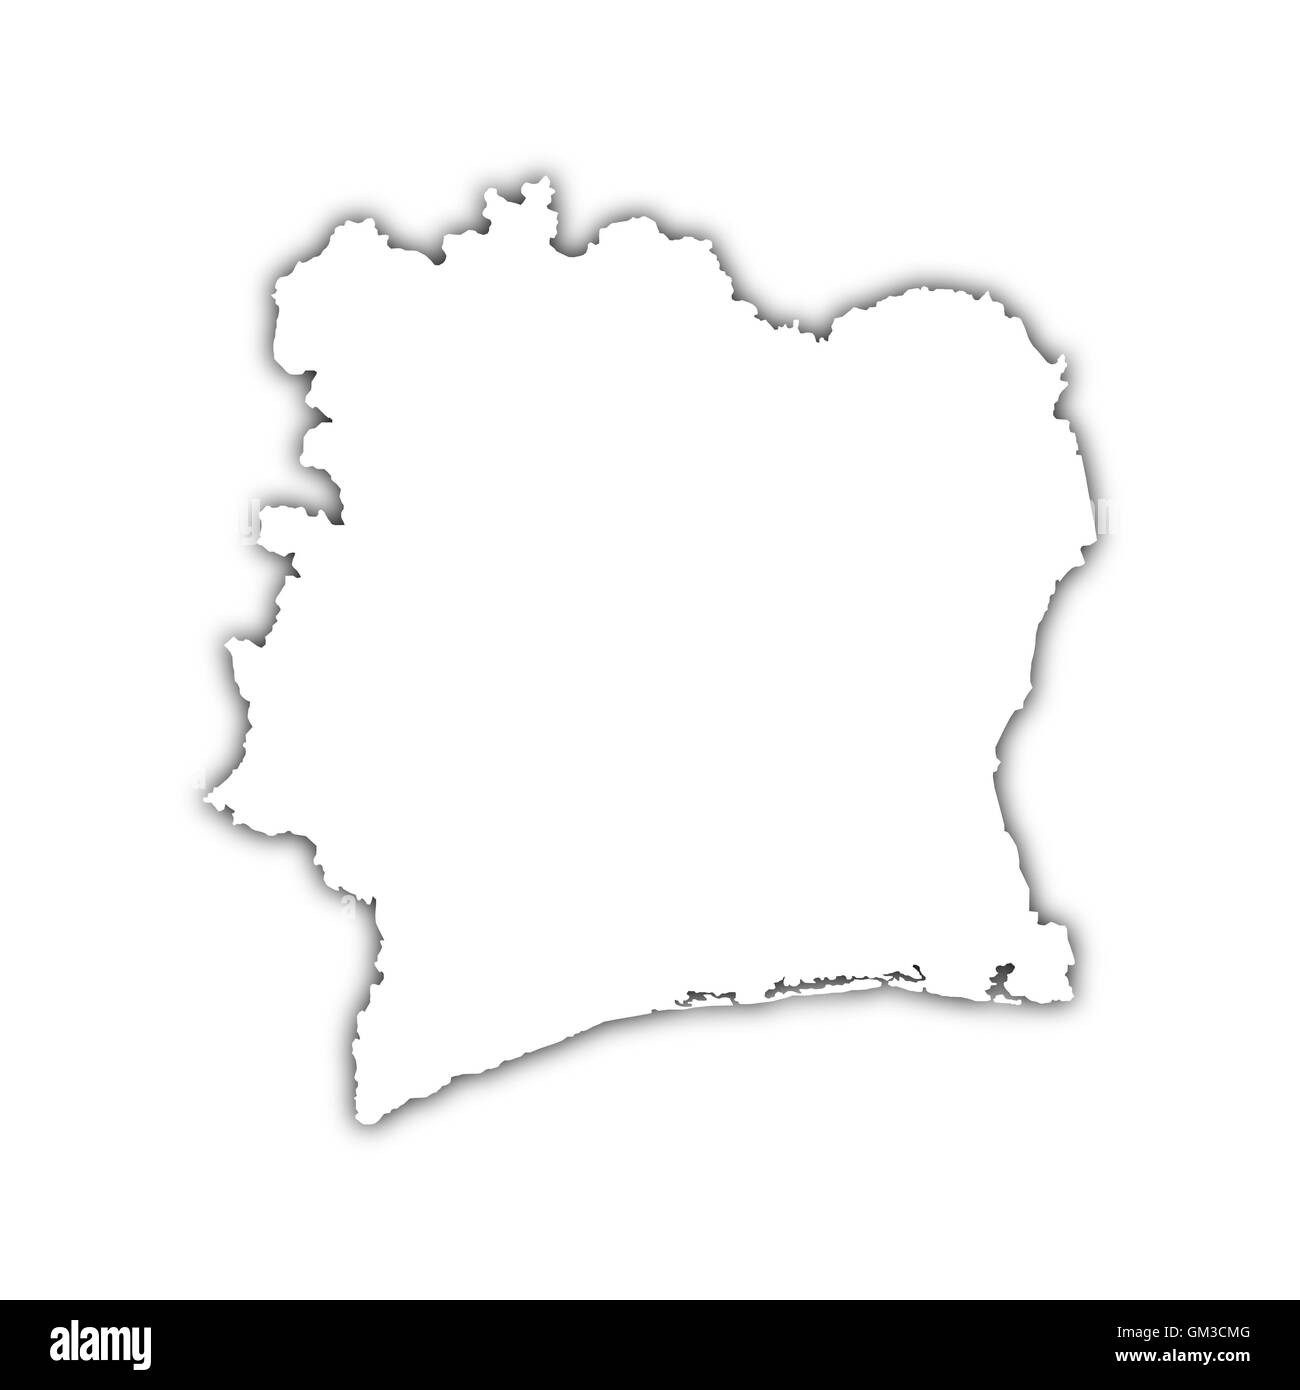 map of c�te d'ivoire - Stock Image